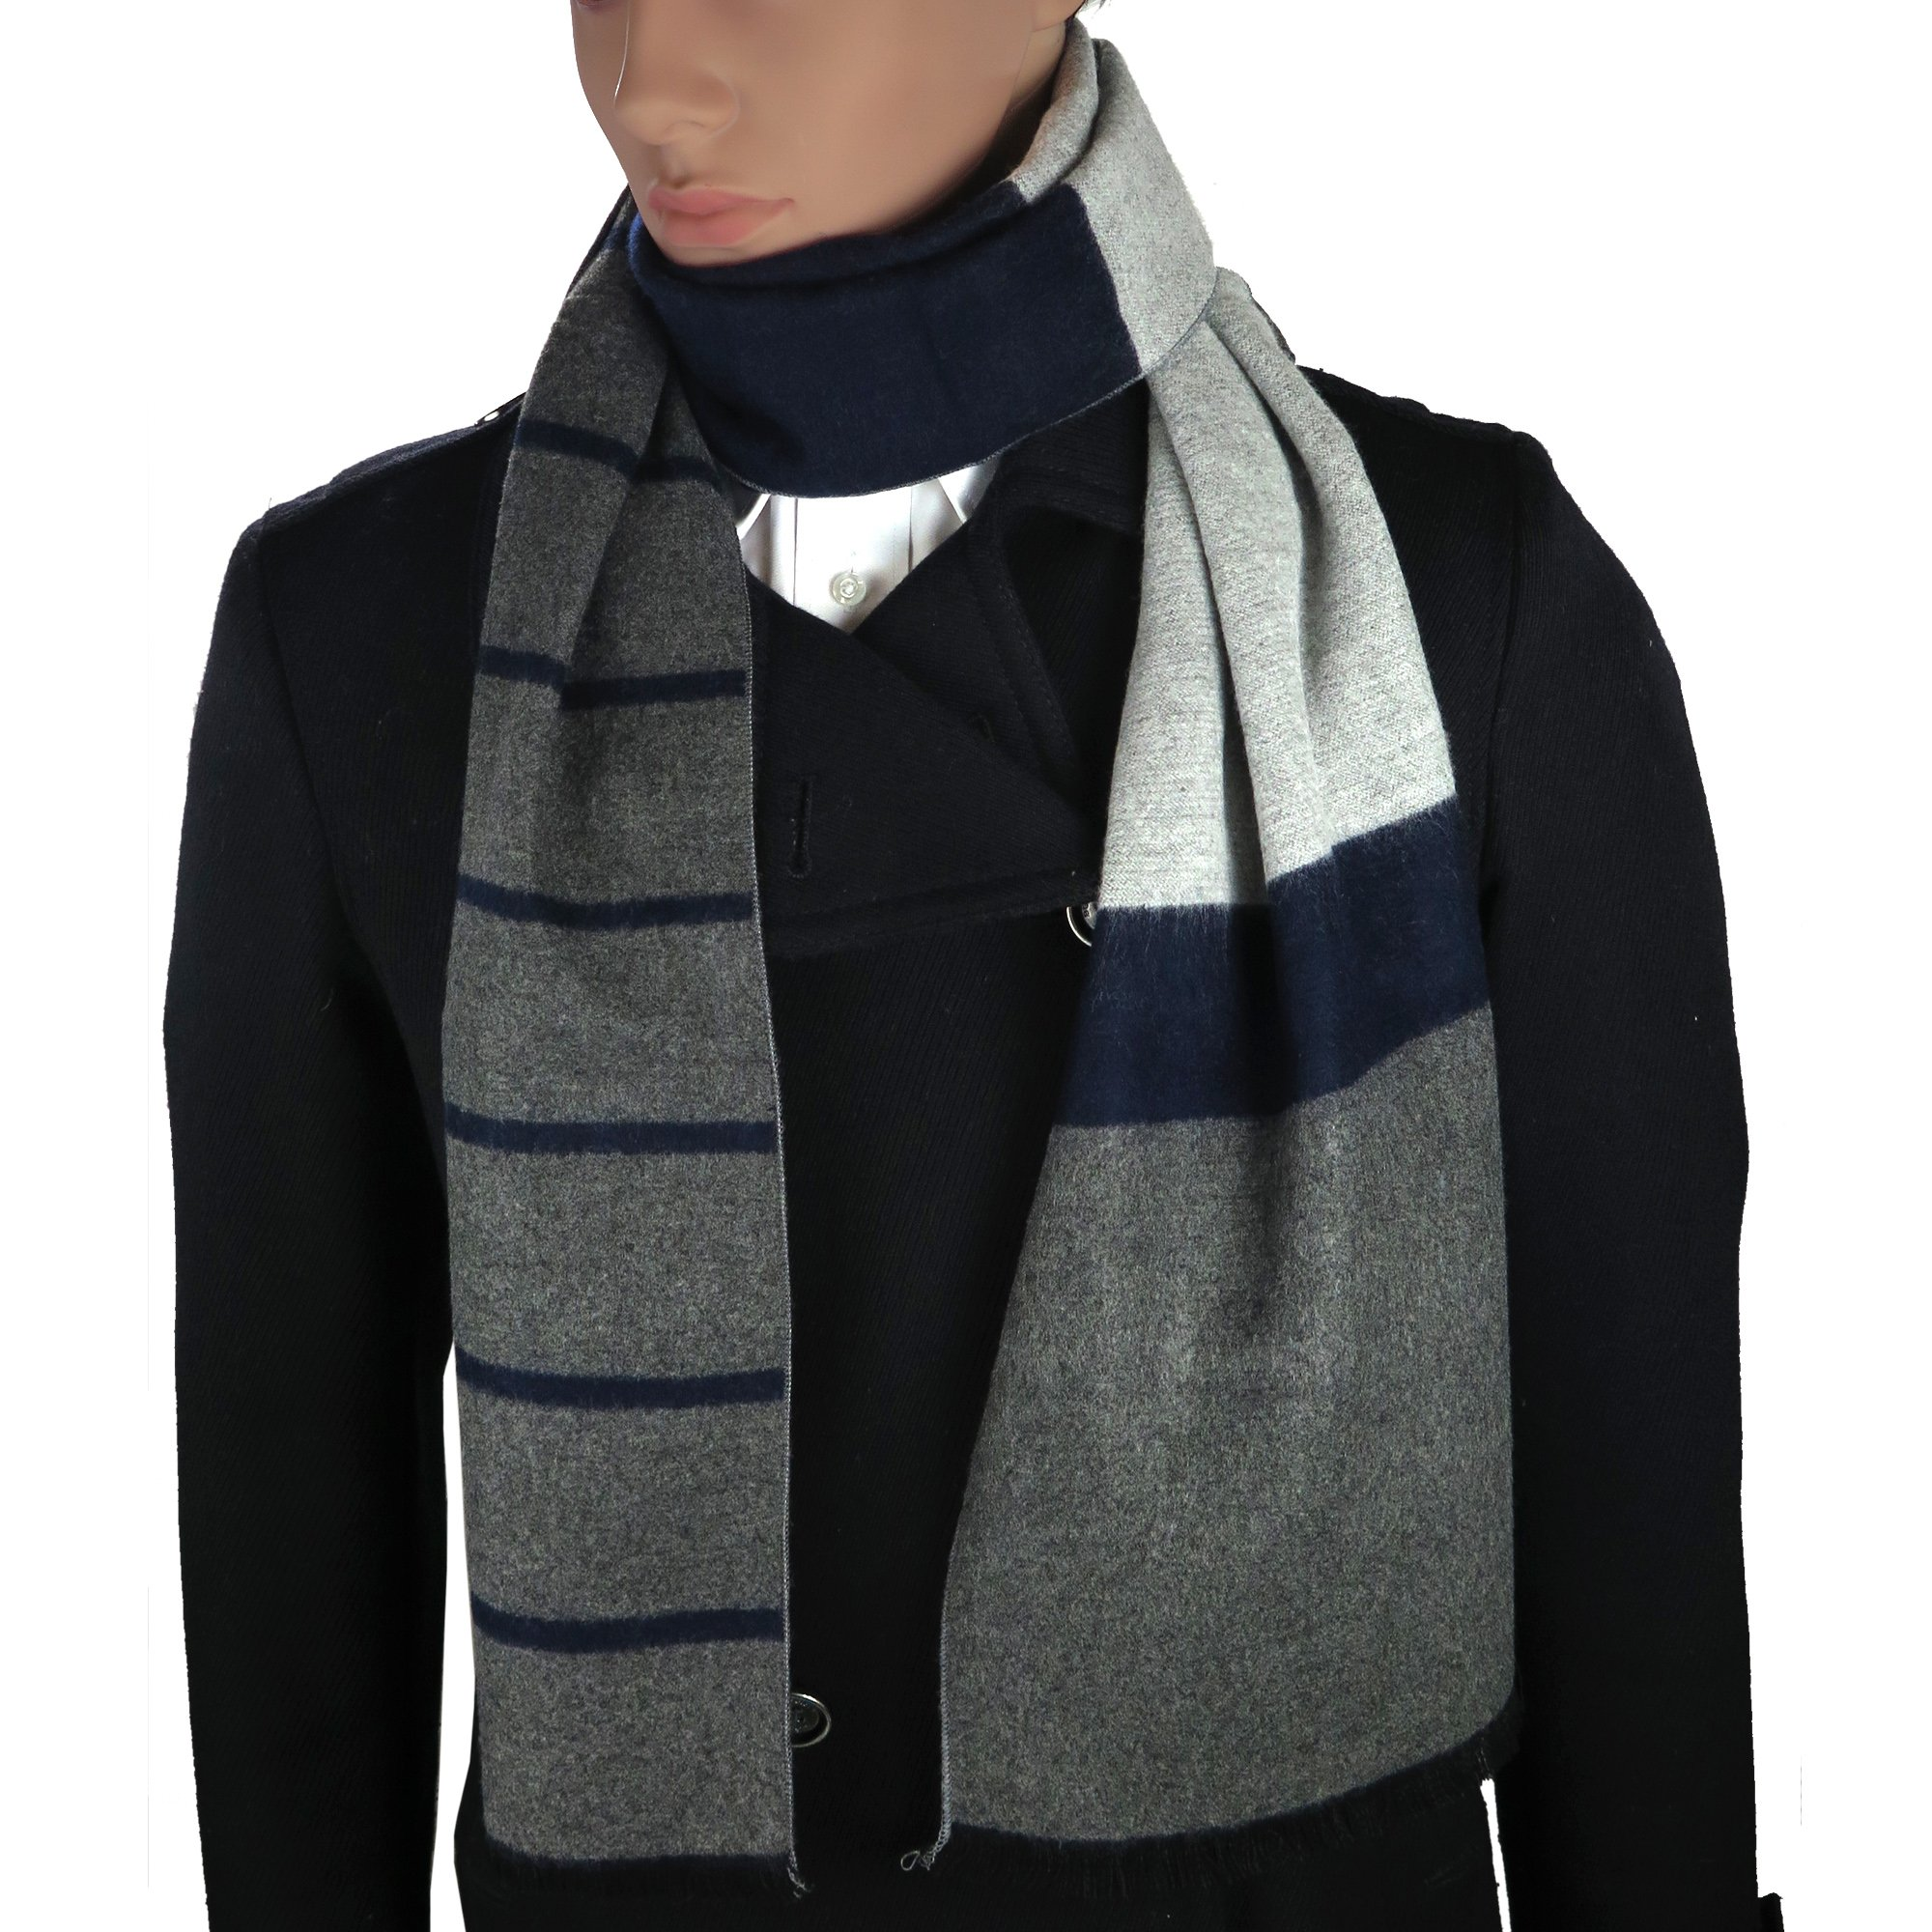 Mens Cashmere-Feel Winter Scarf By Debra Weitzner: 100% Cotton, Soft And Warm Accessory In 6 Prints